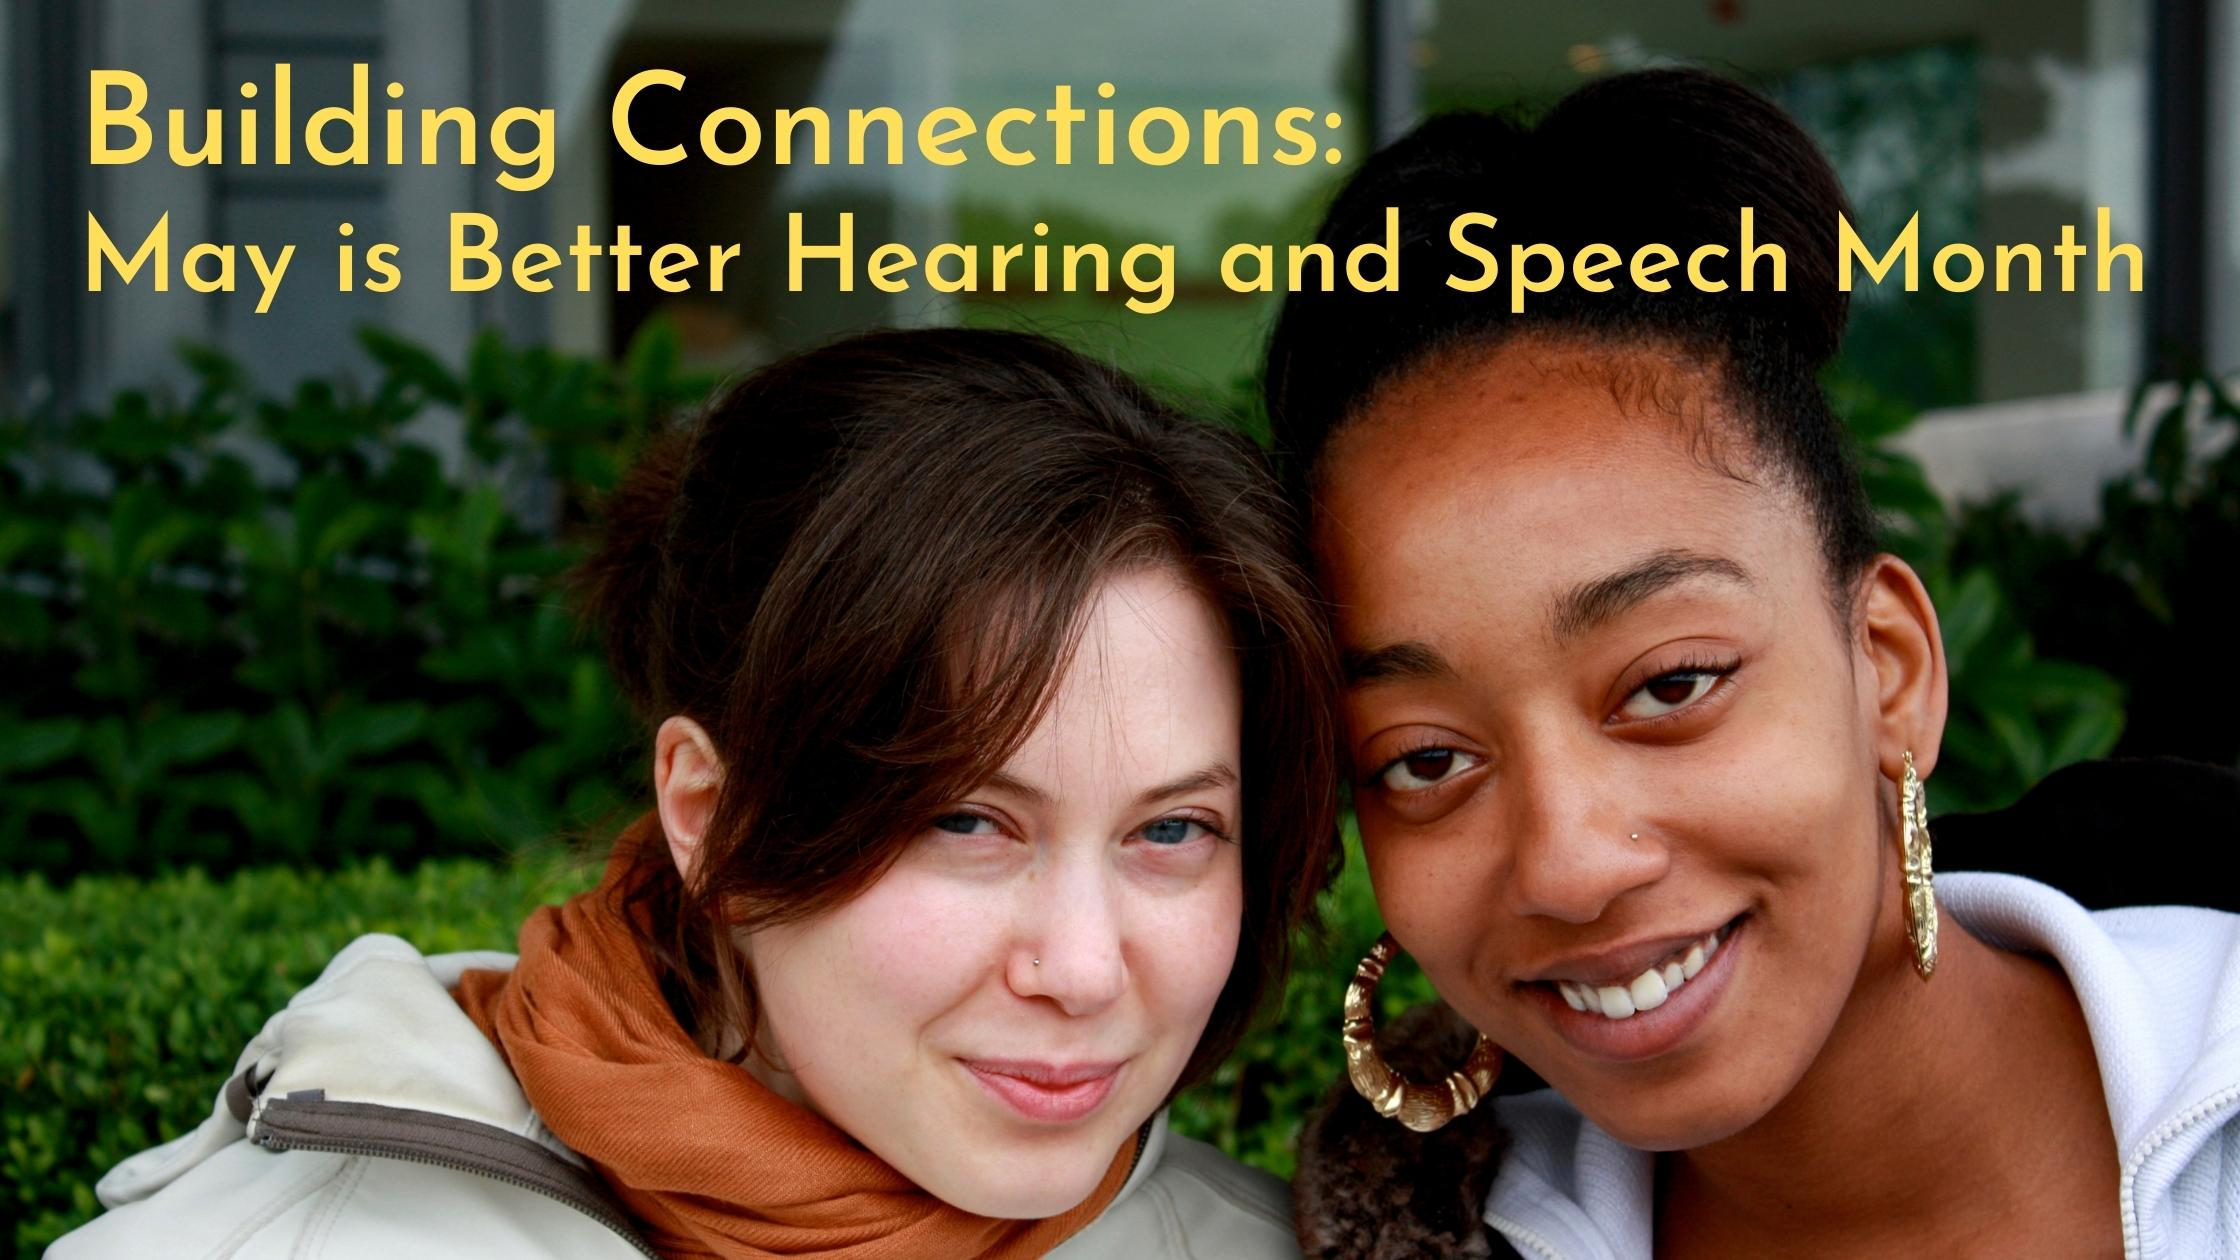 Building Connections May is Better Hearing and Speech Month(2)